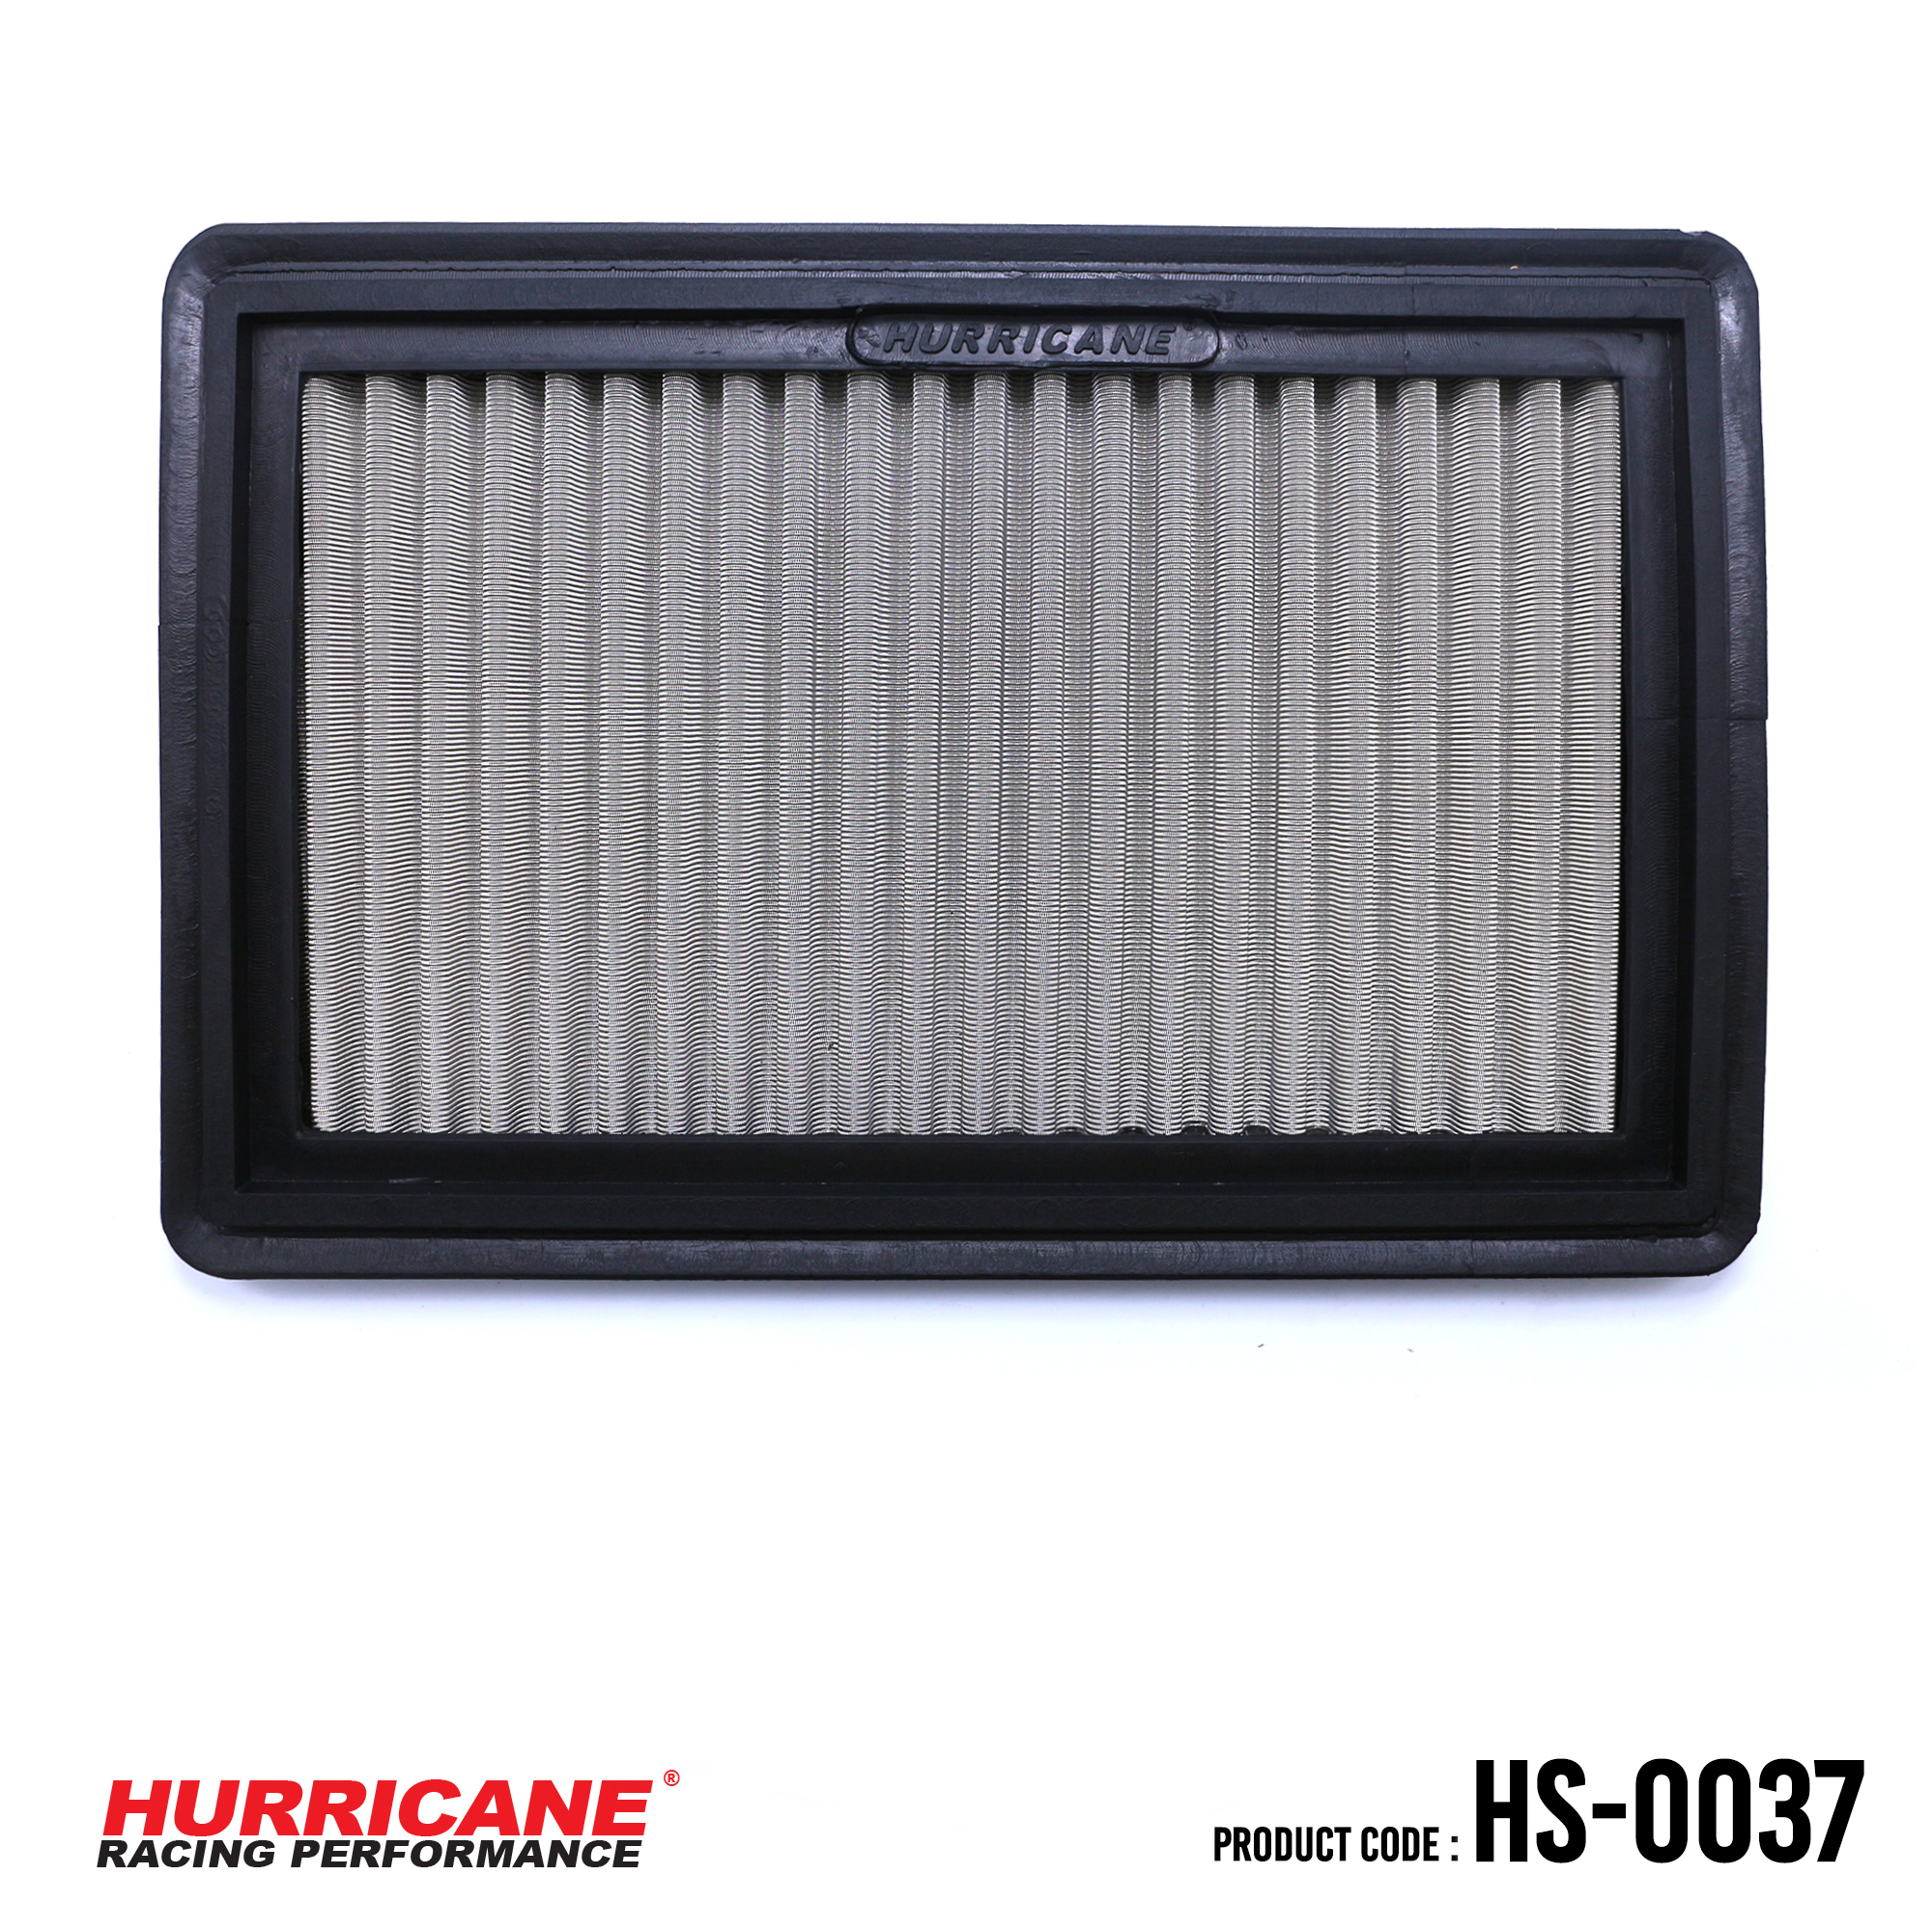 HURRICANE STAINLESS STEEL AIR FILTER FOR HS-0037 Ford